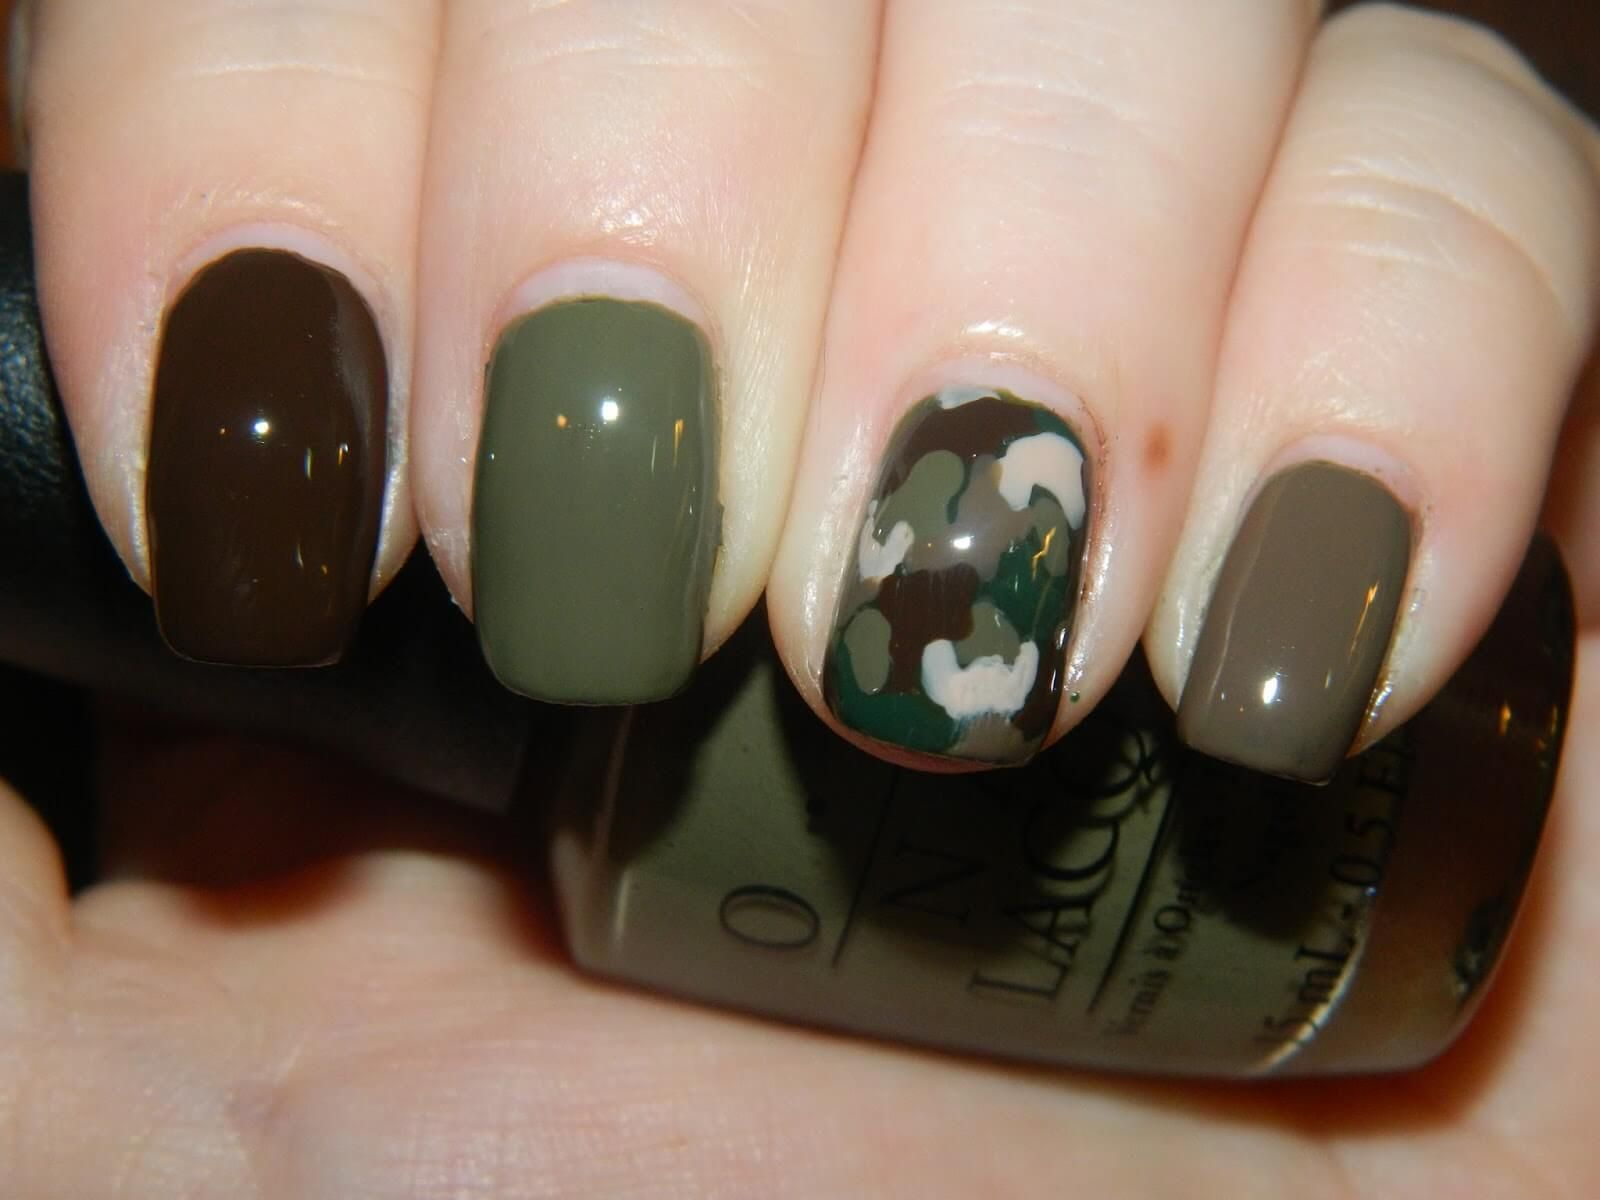 camo-acrylic-nails5.jpg (1600×1200) | camo nails | Pinterest | Camo ...